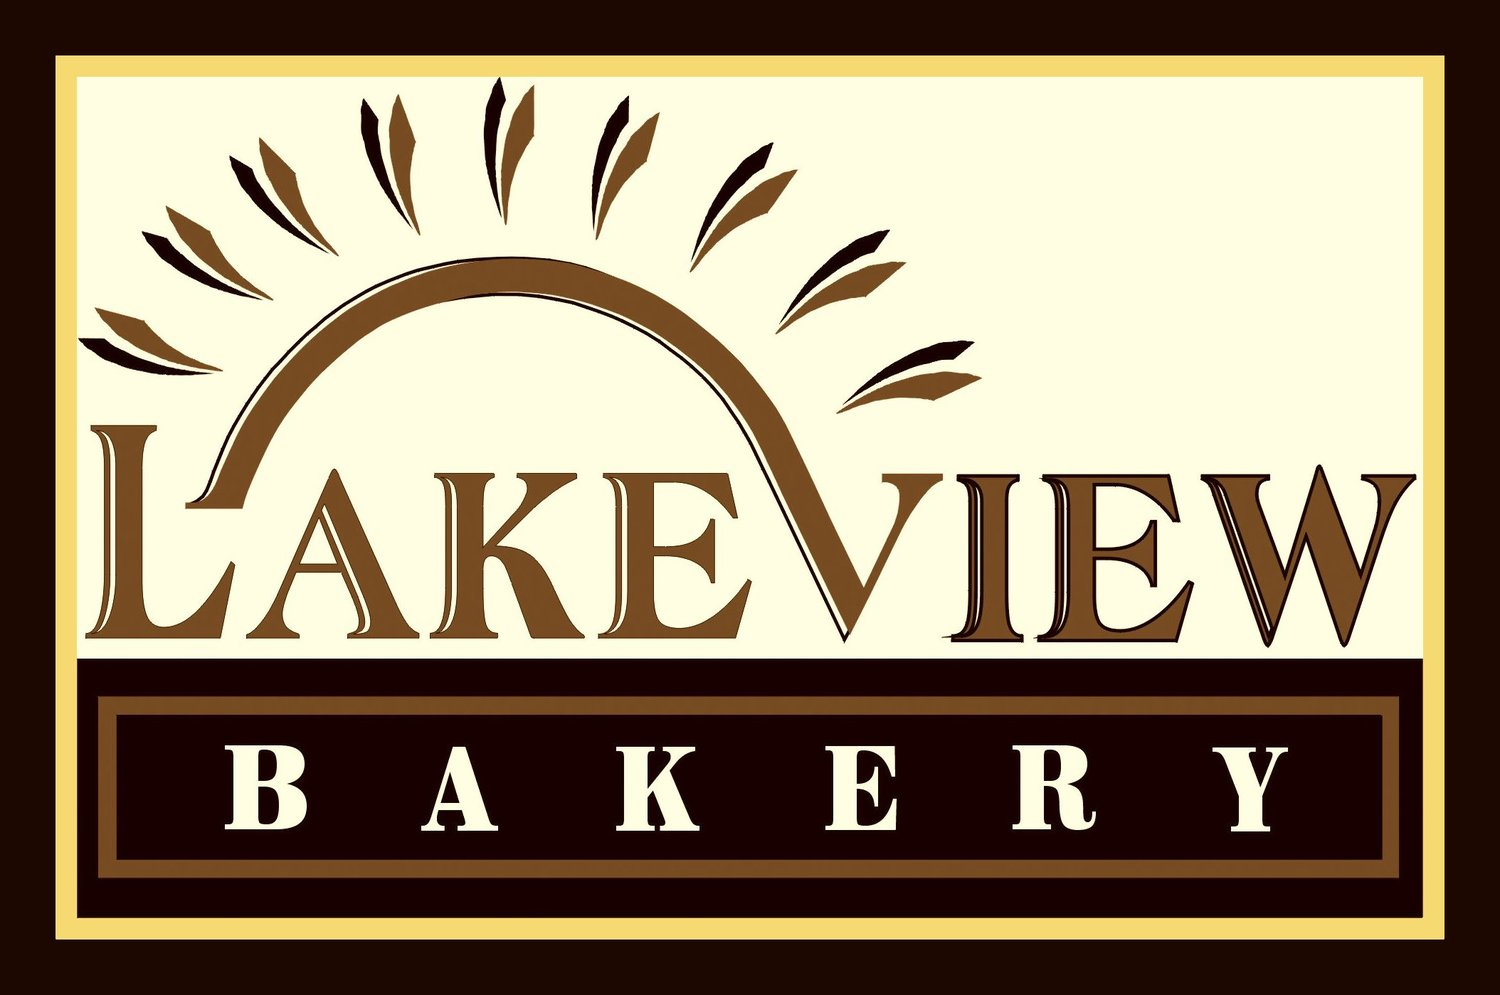 Lakeview Bakery